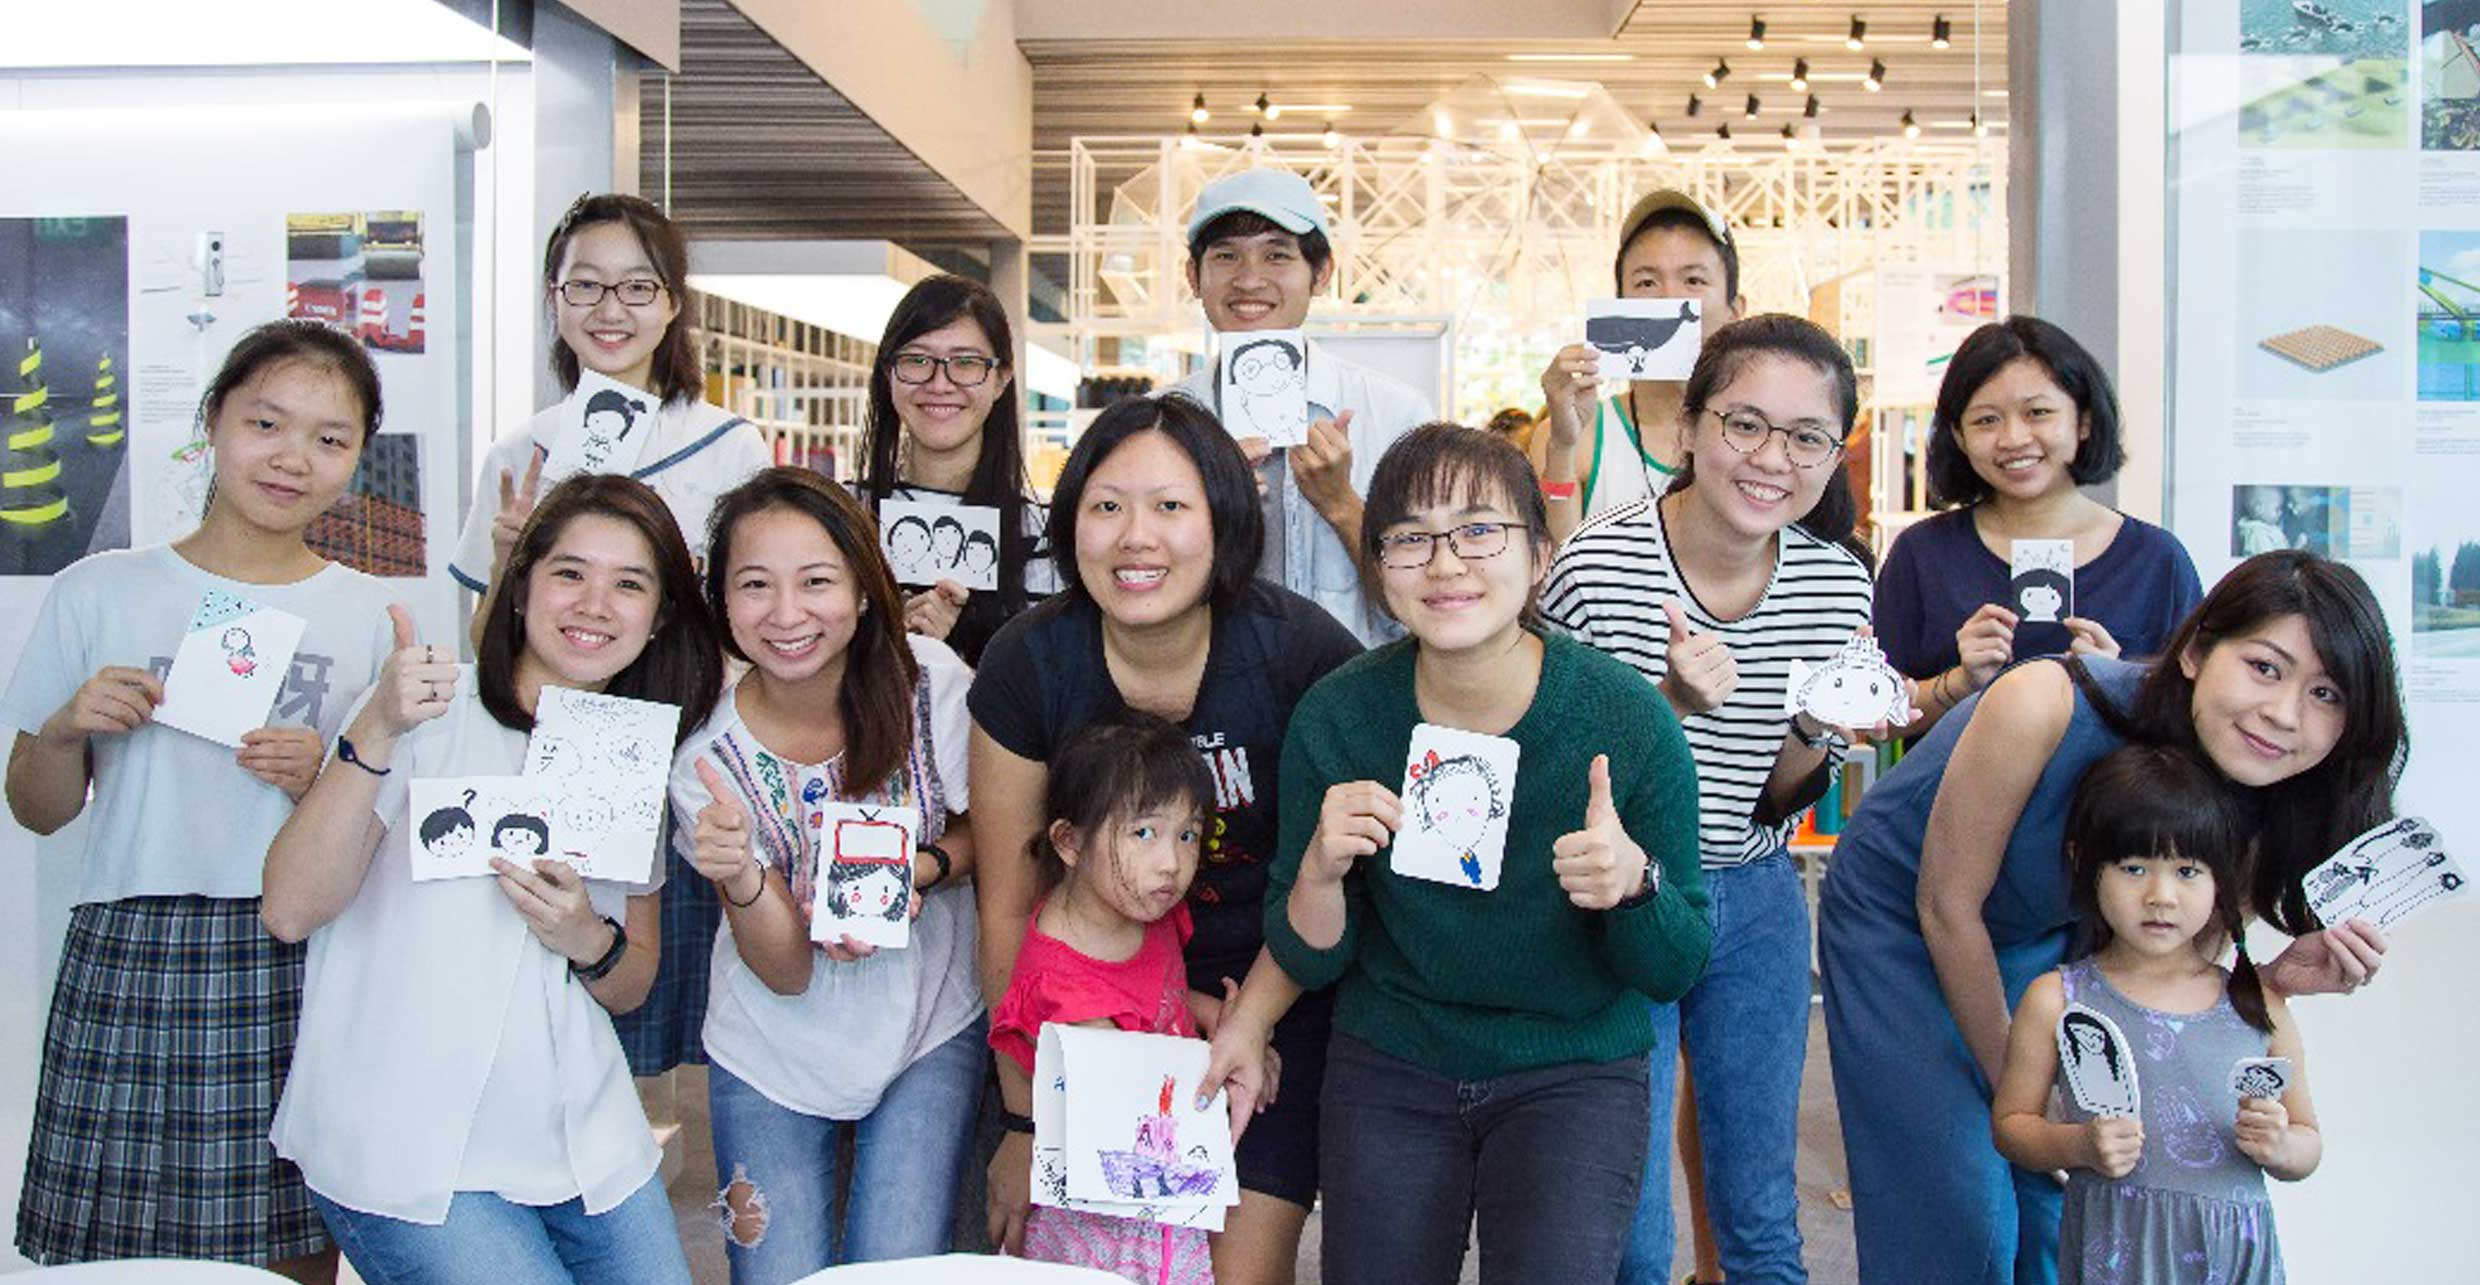 Doodling Greeting Cards workshop by Xinyi Toh, Singapore   This 120 min beginner workshop taught participants how to create their very own bespoke greeting cards with doodling art. The session is simple, low-stress and FUN - once you begin it's difficult to stop!